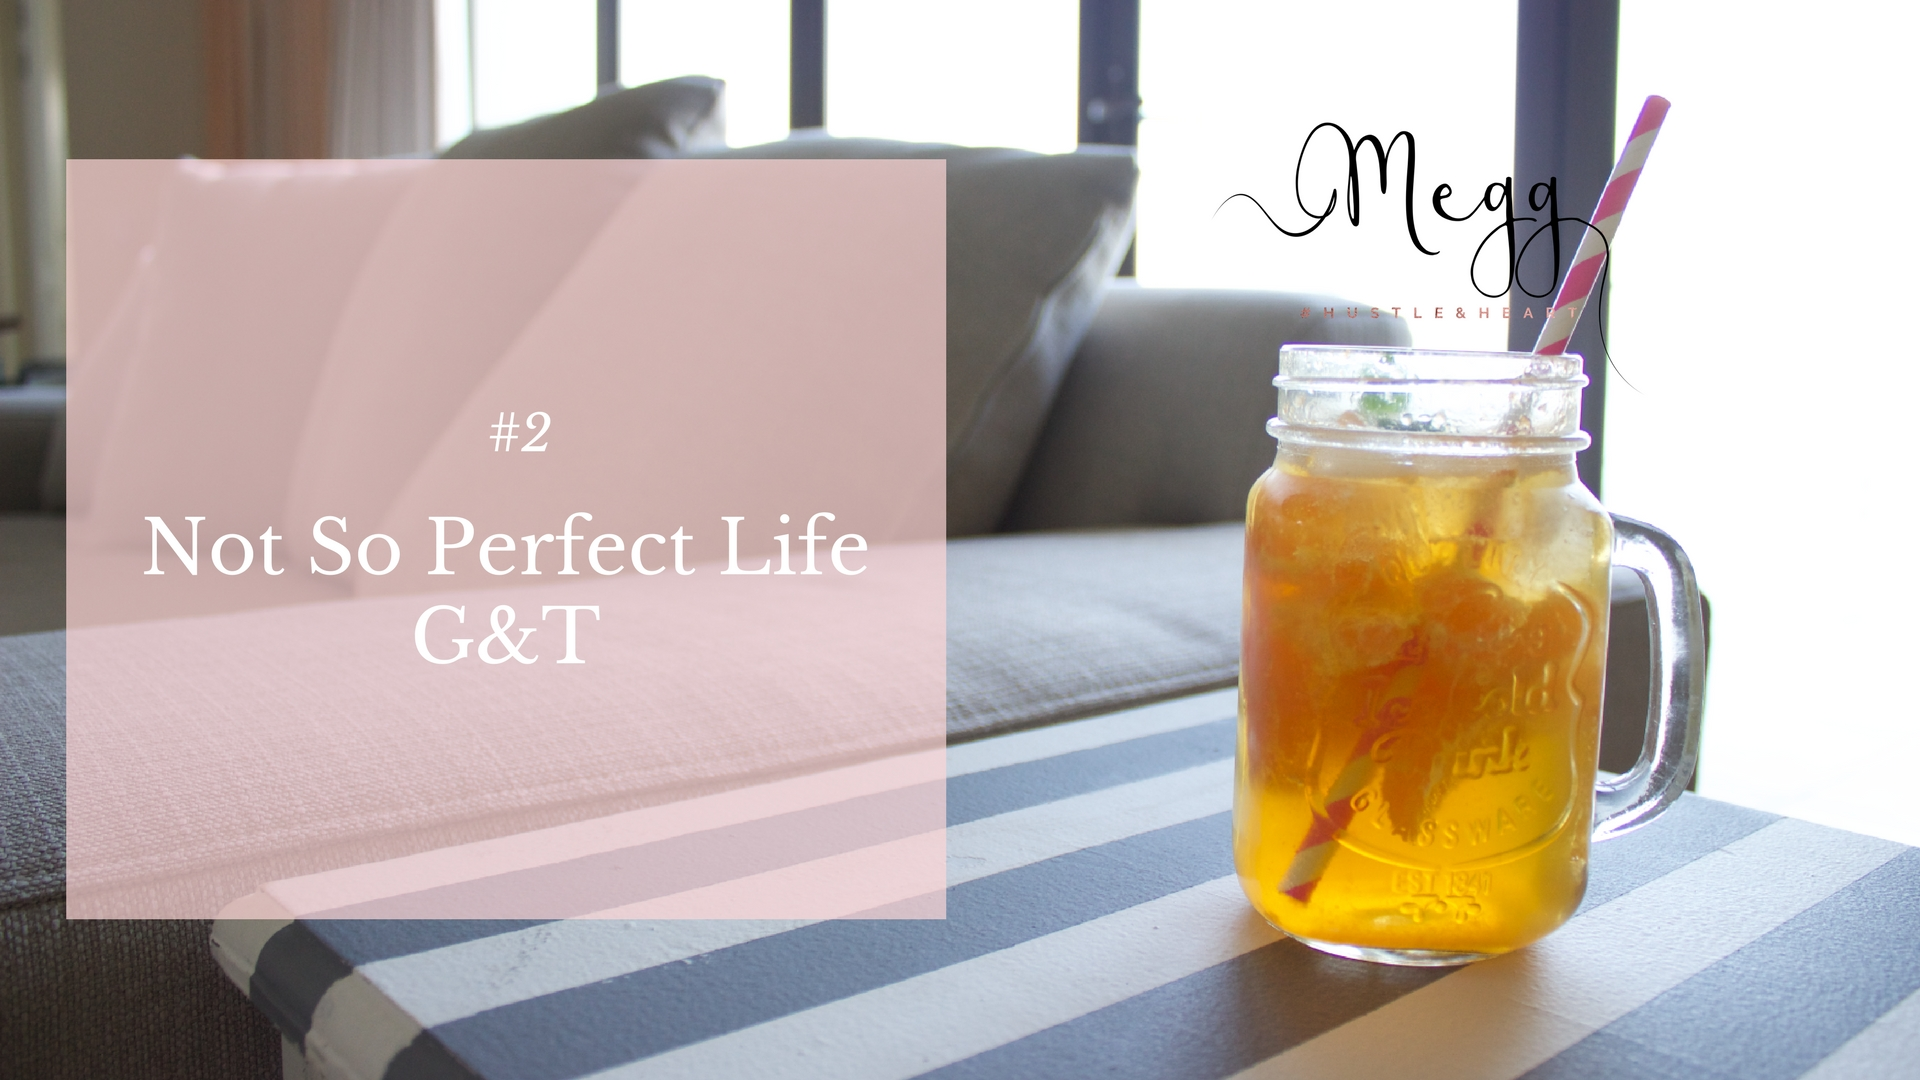 Rooibos Infused Gin & Tonic